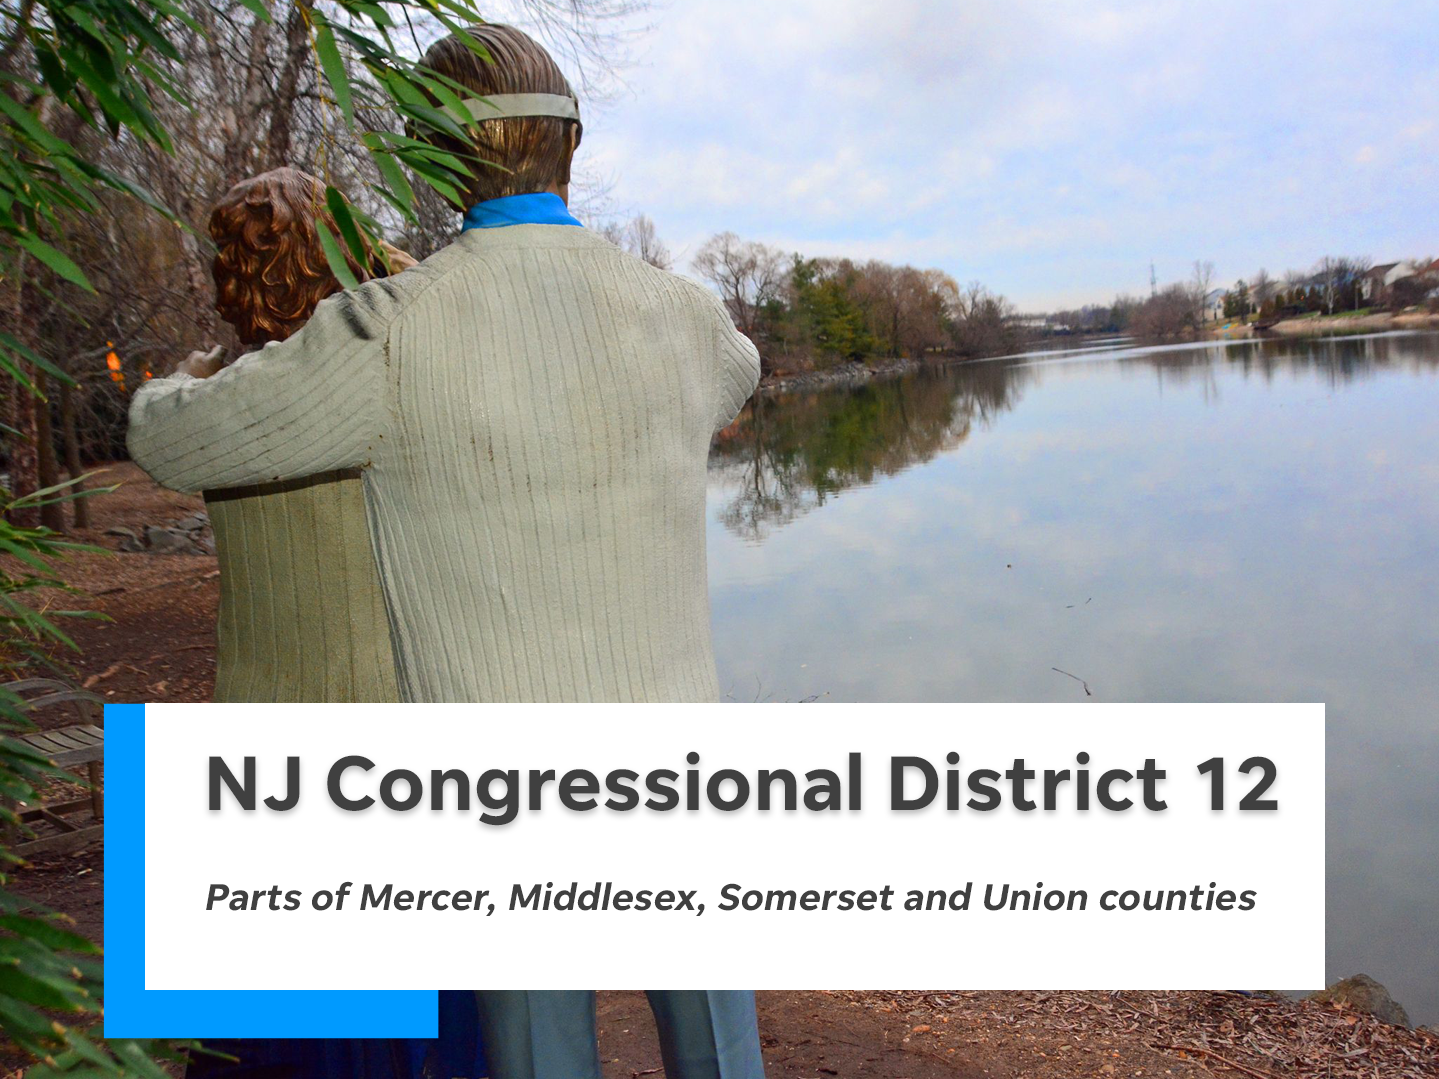 NJ's 12th congressional district is comprised of parts of Mercer, Middlesex, Somerset and Union counties.